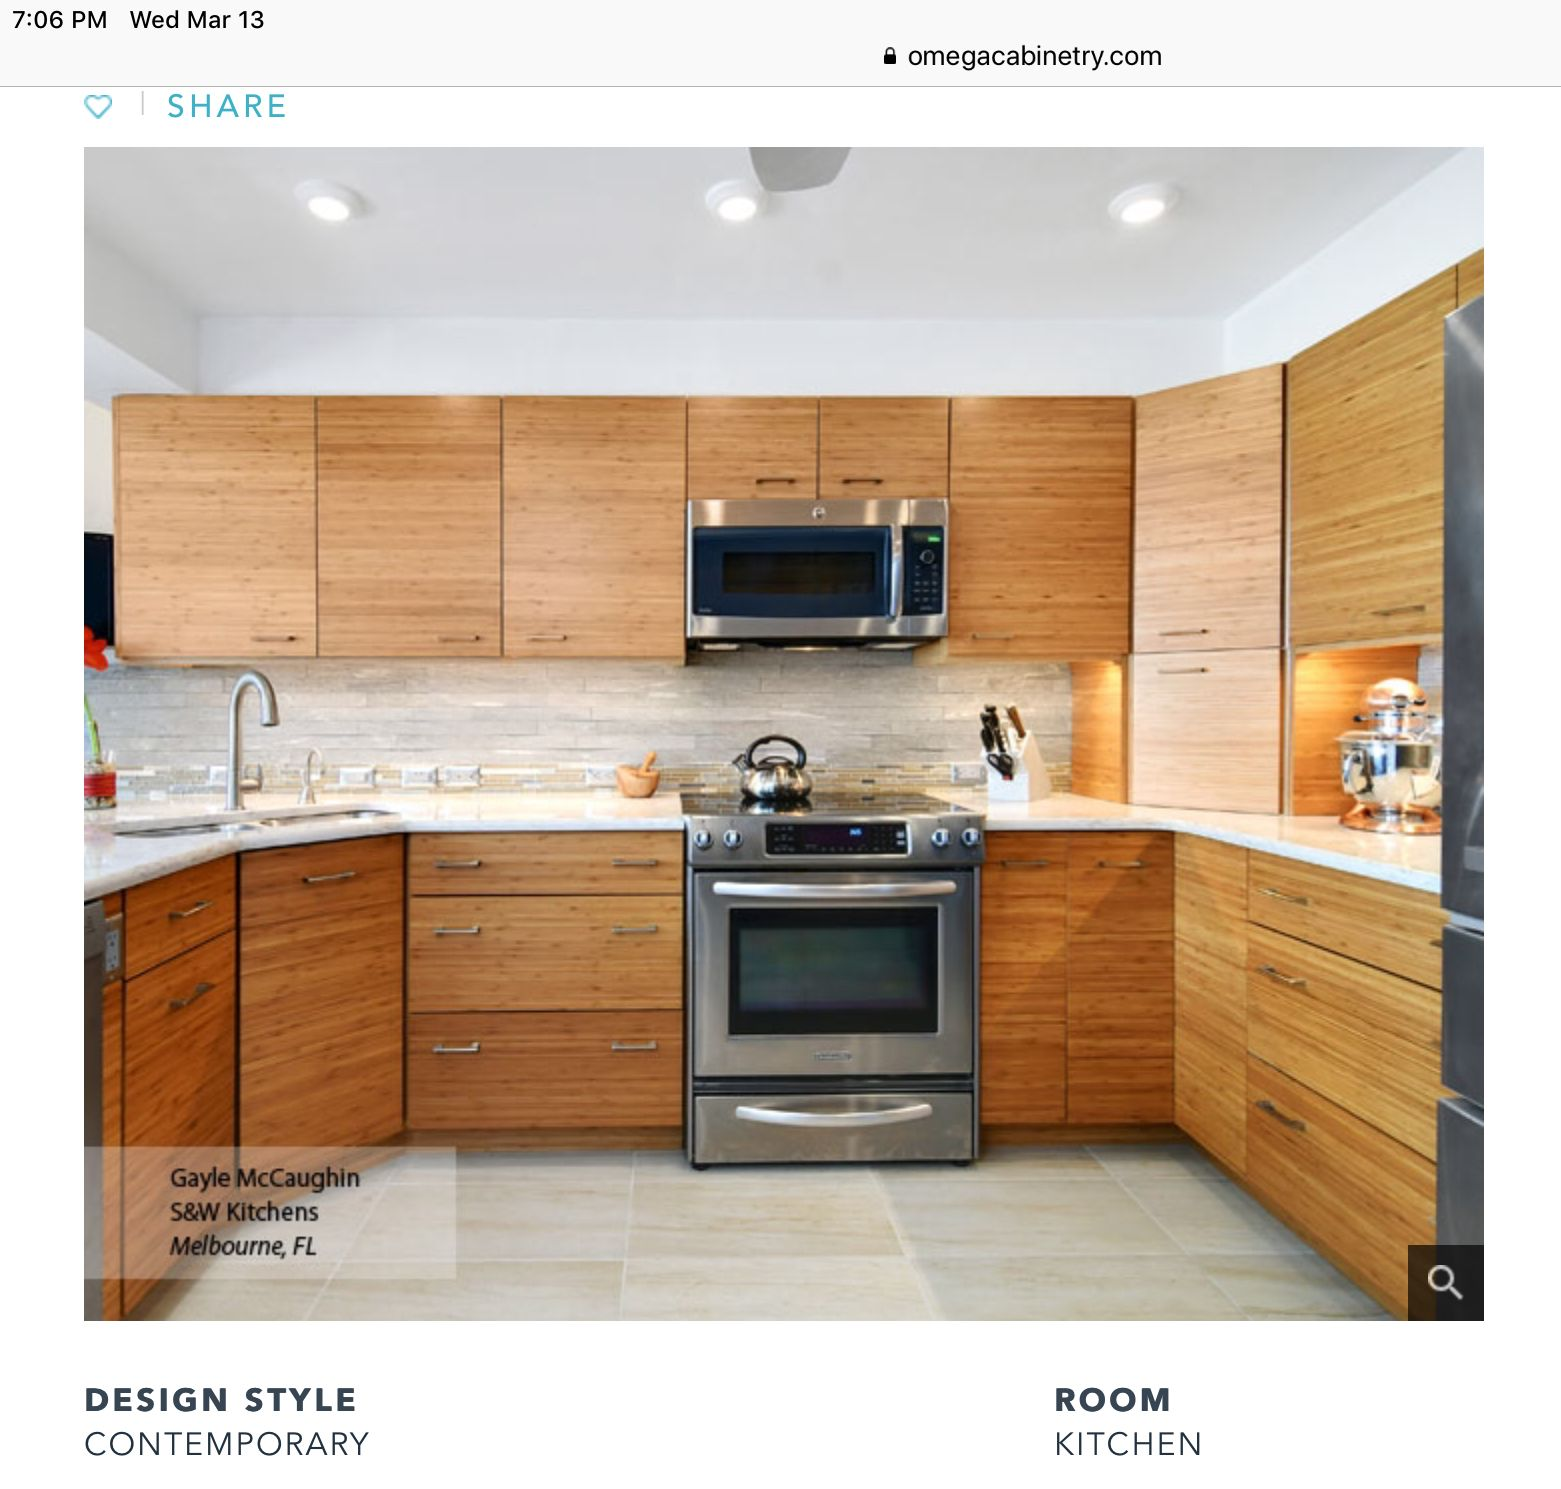 Cabinet Refacing Home Depot: Bamboo Kitchen Cabinets In 2019